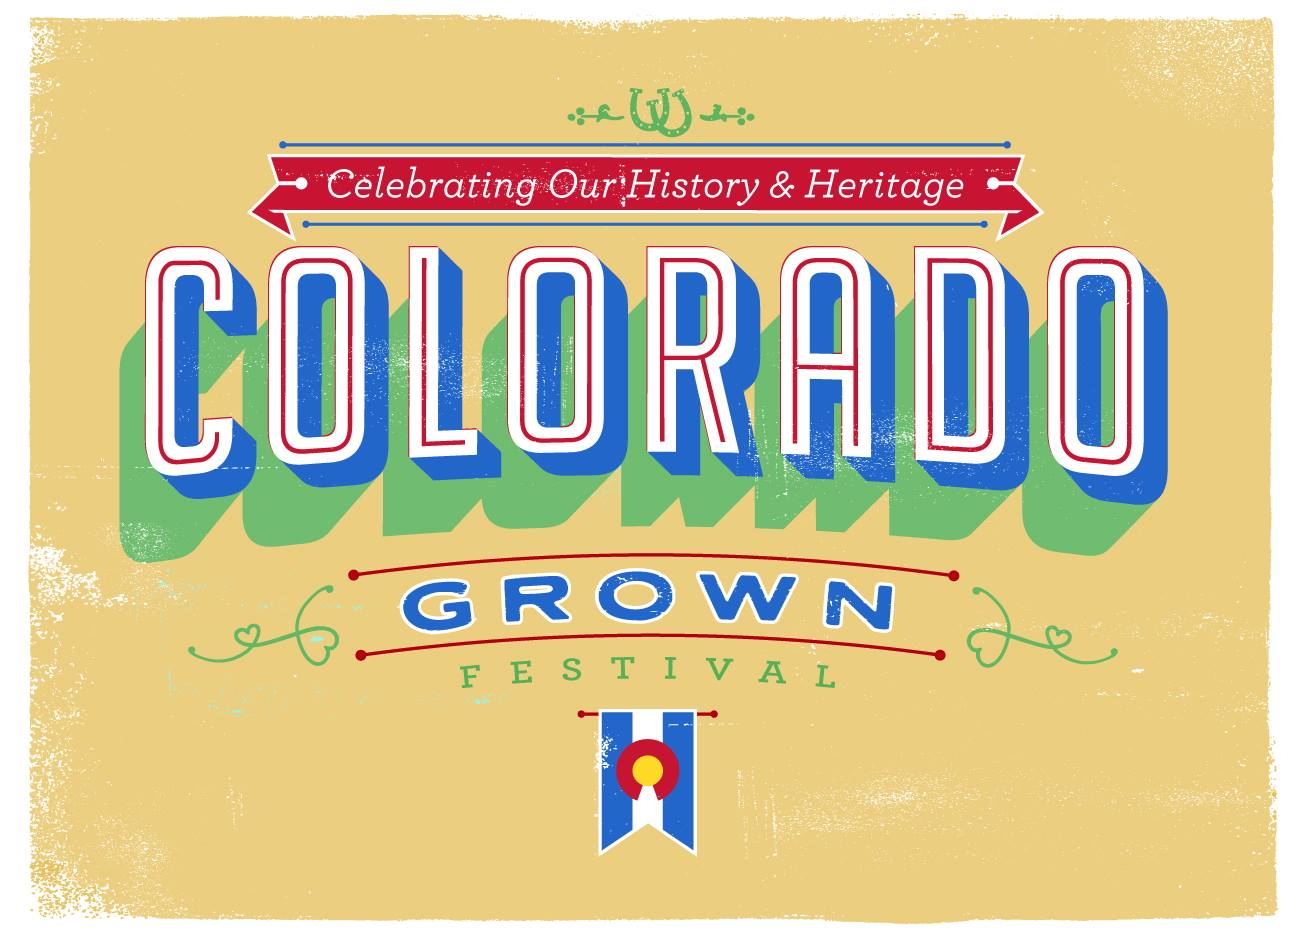 Colorado Grown Festival, Rocky Mountain Food Report, Colorado Springs, food news, events